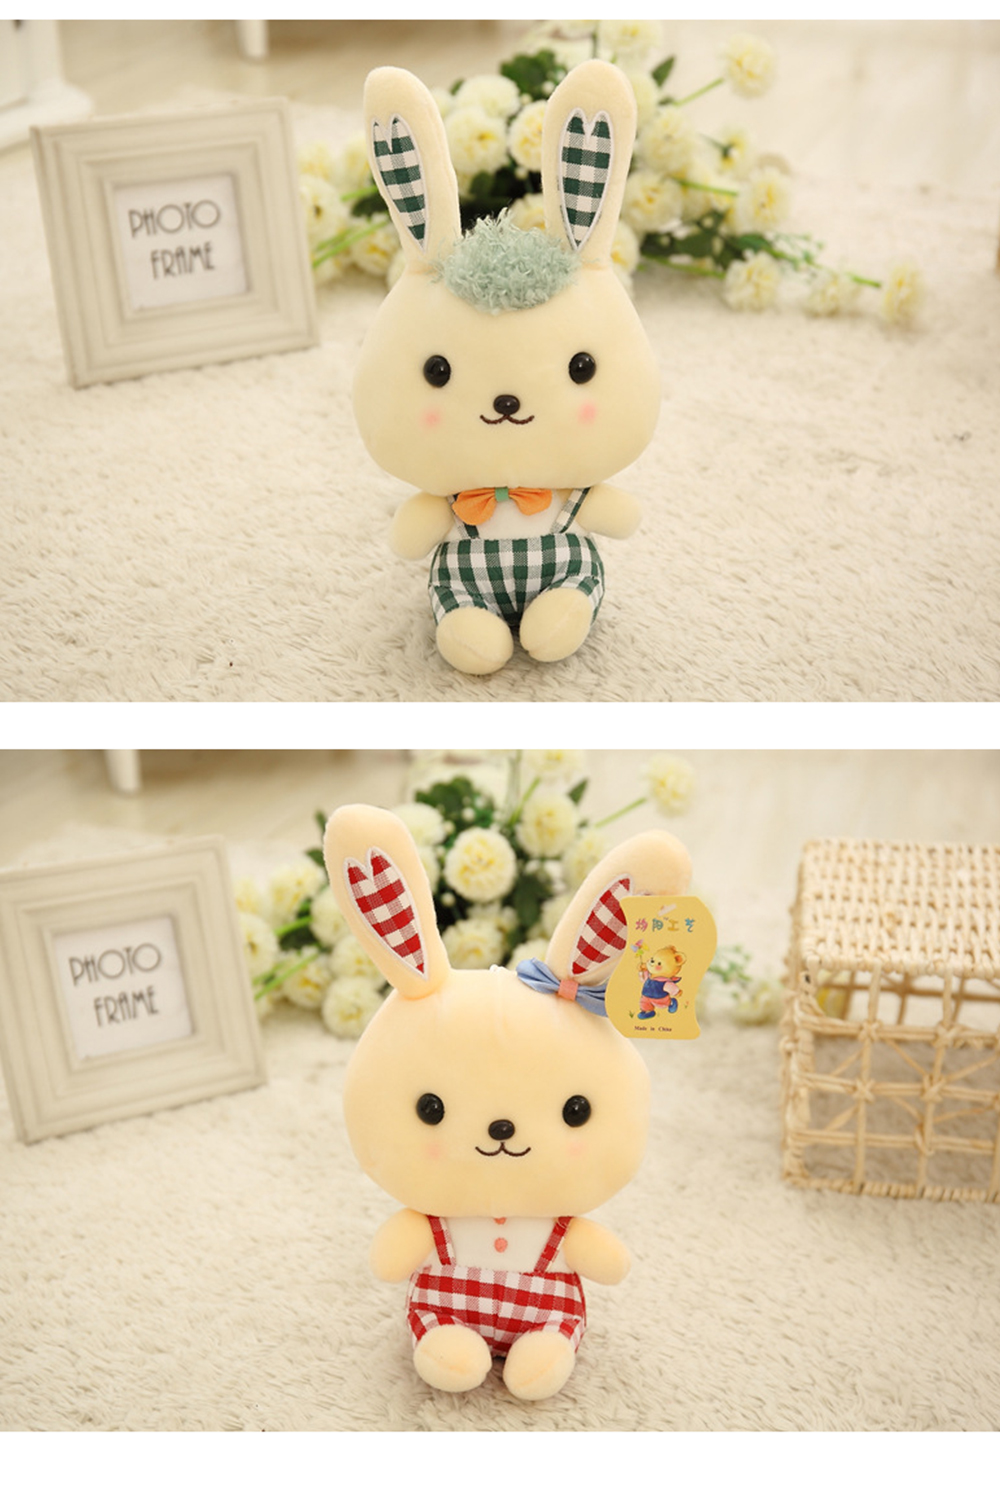 Bunny Plush Toy Grab Doll Machine Doll Cute Gege Rabbit Doll Festival Activities Gift 7